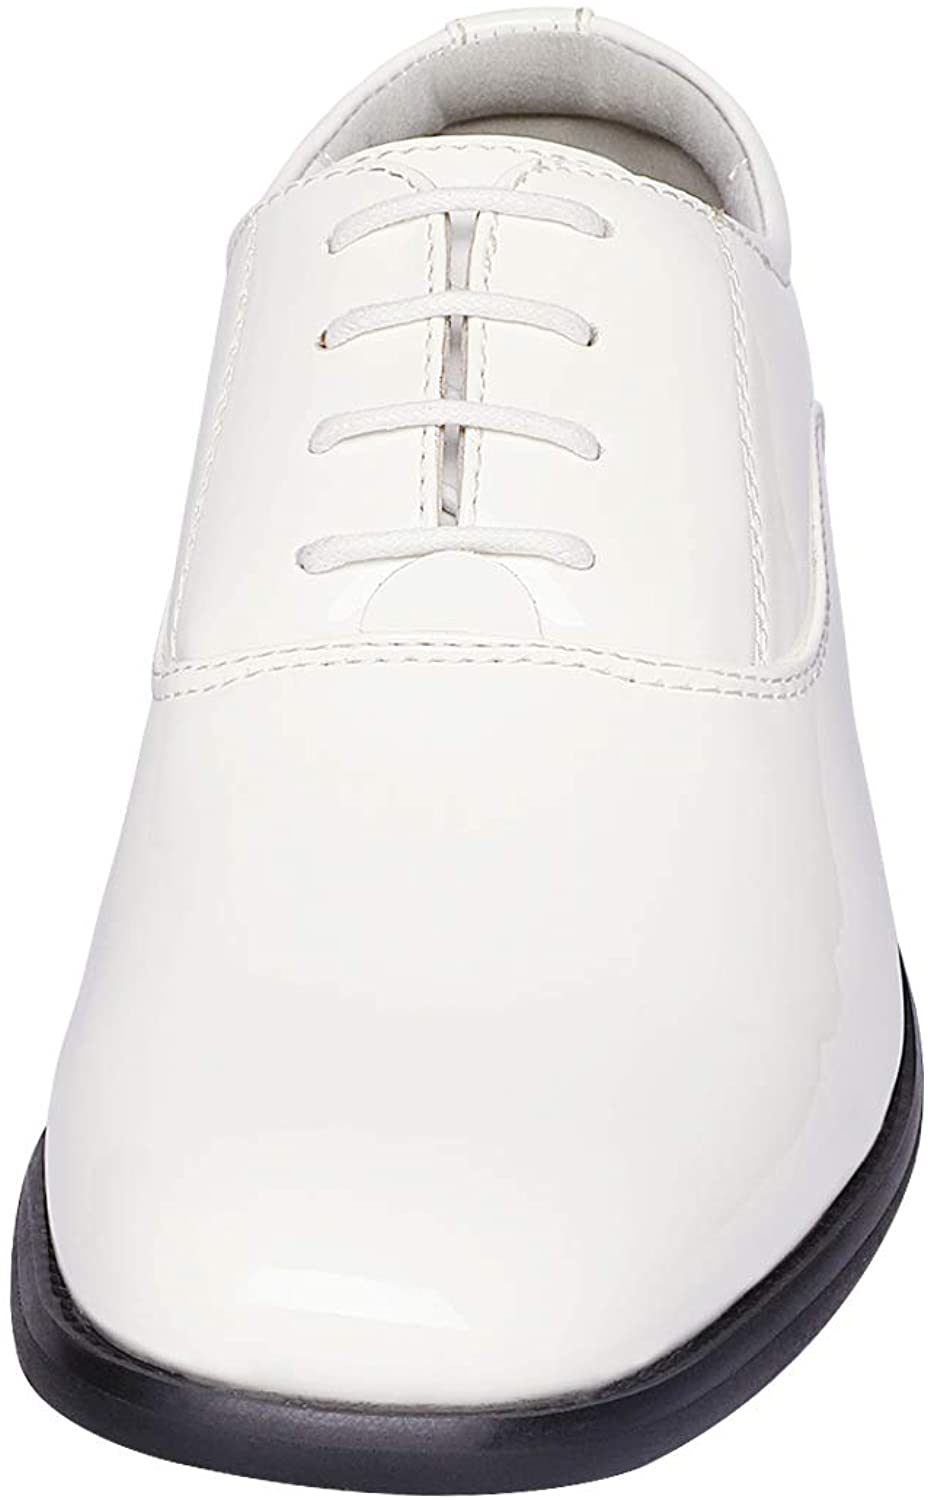 Bruno Marc Men/'s Classic Oxford Dress Shoes Formal Lace Up Loafer Shoes